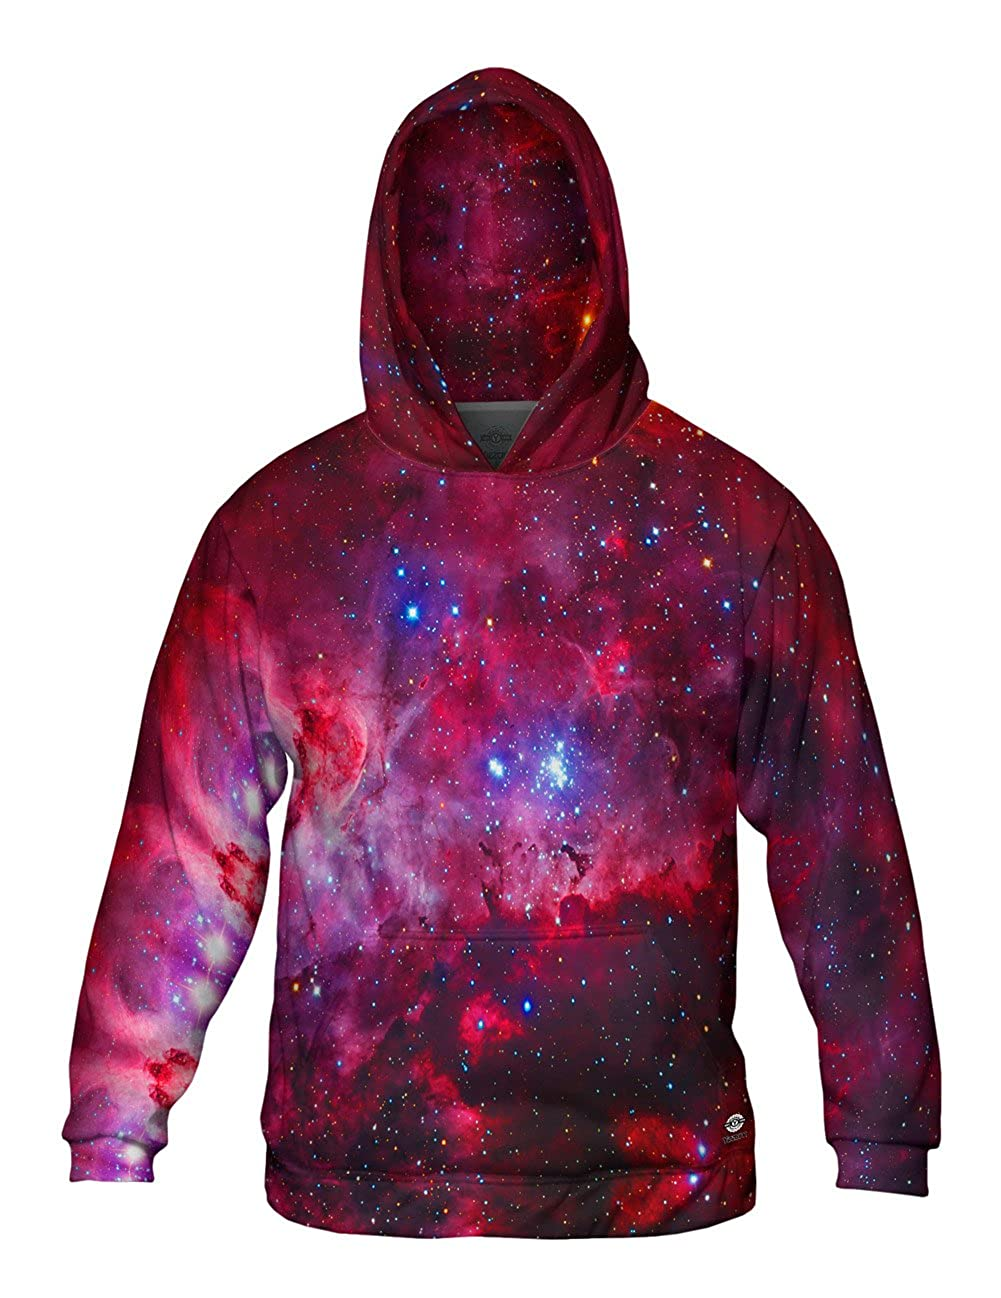 Yizzam Mens Hoodie Sweater 0777 Allover Print Great Carina Nebula Pink Sp